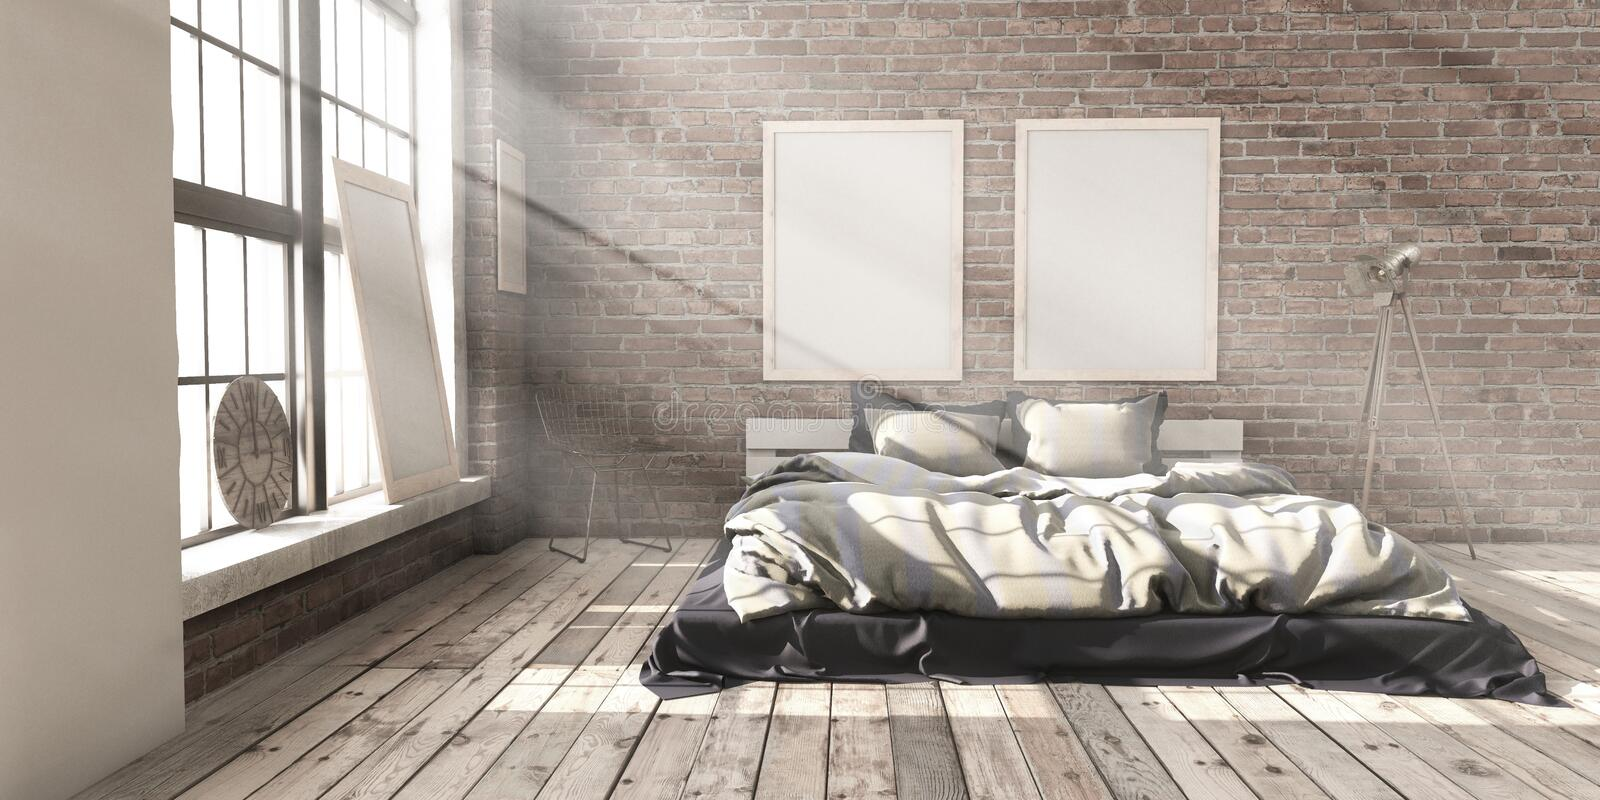 Minimalistik bedroom layout in loft style in the rays of sunlight. stock image